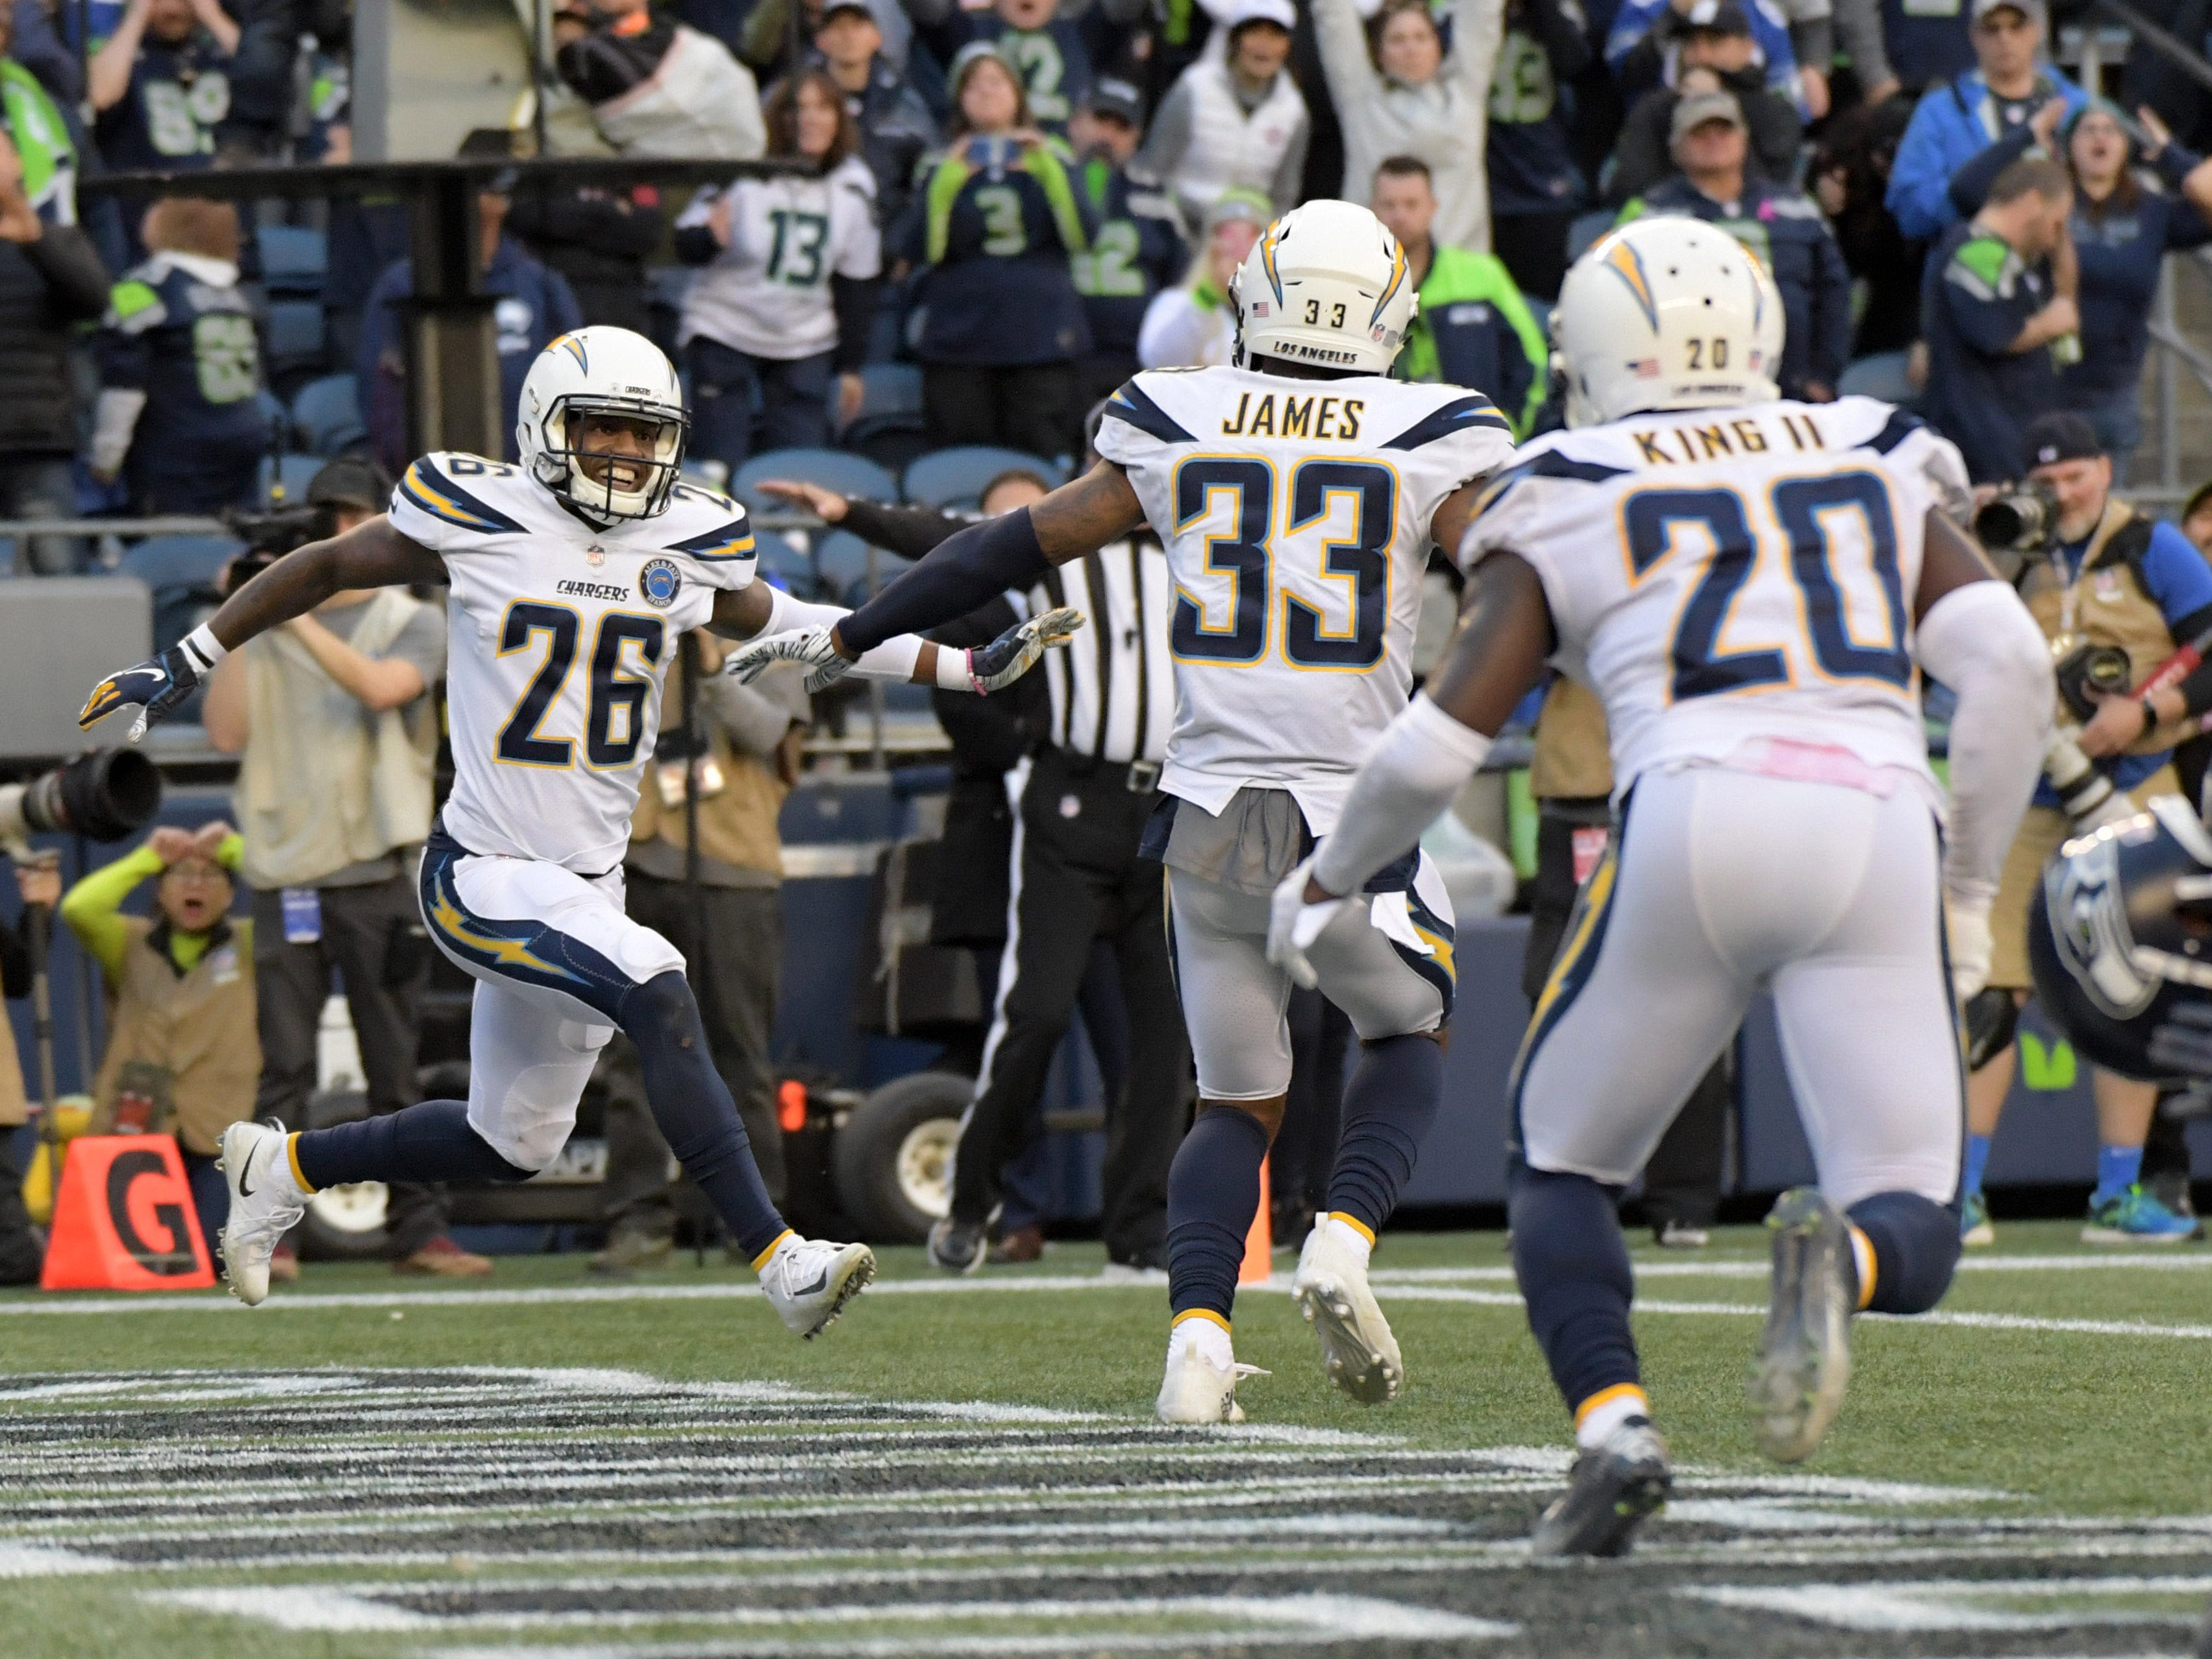 6. Chargers (6-2) | Last game: Defeated the Seahawks, 25-17 | Previous ranking: 5